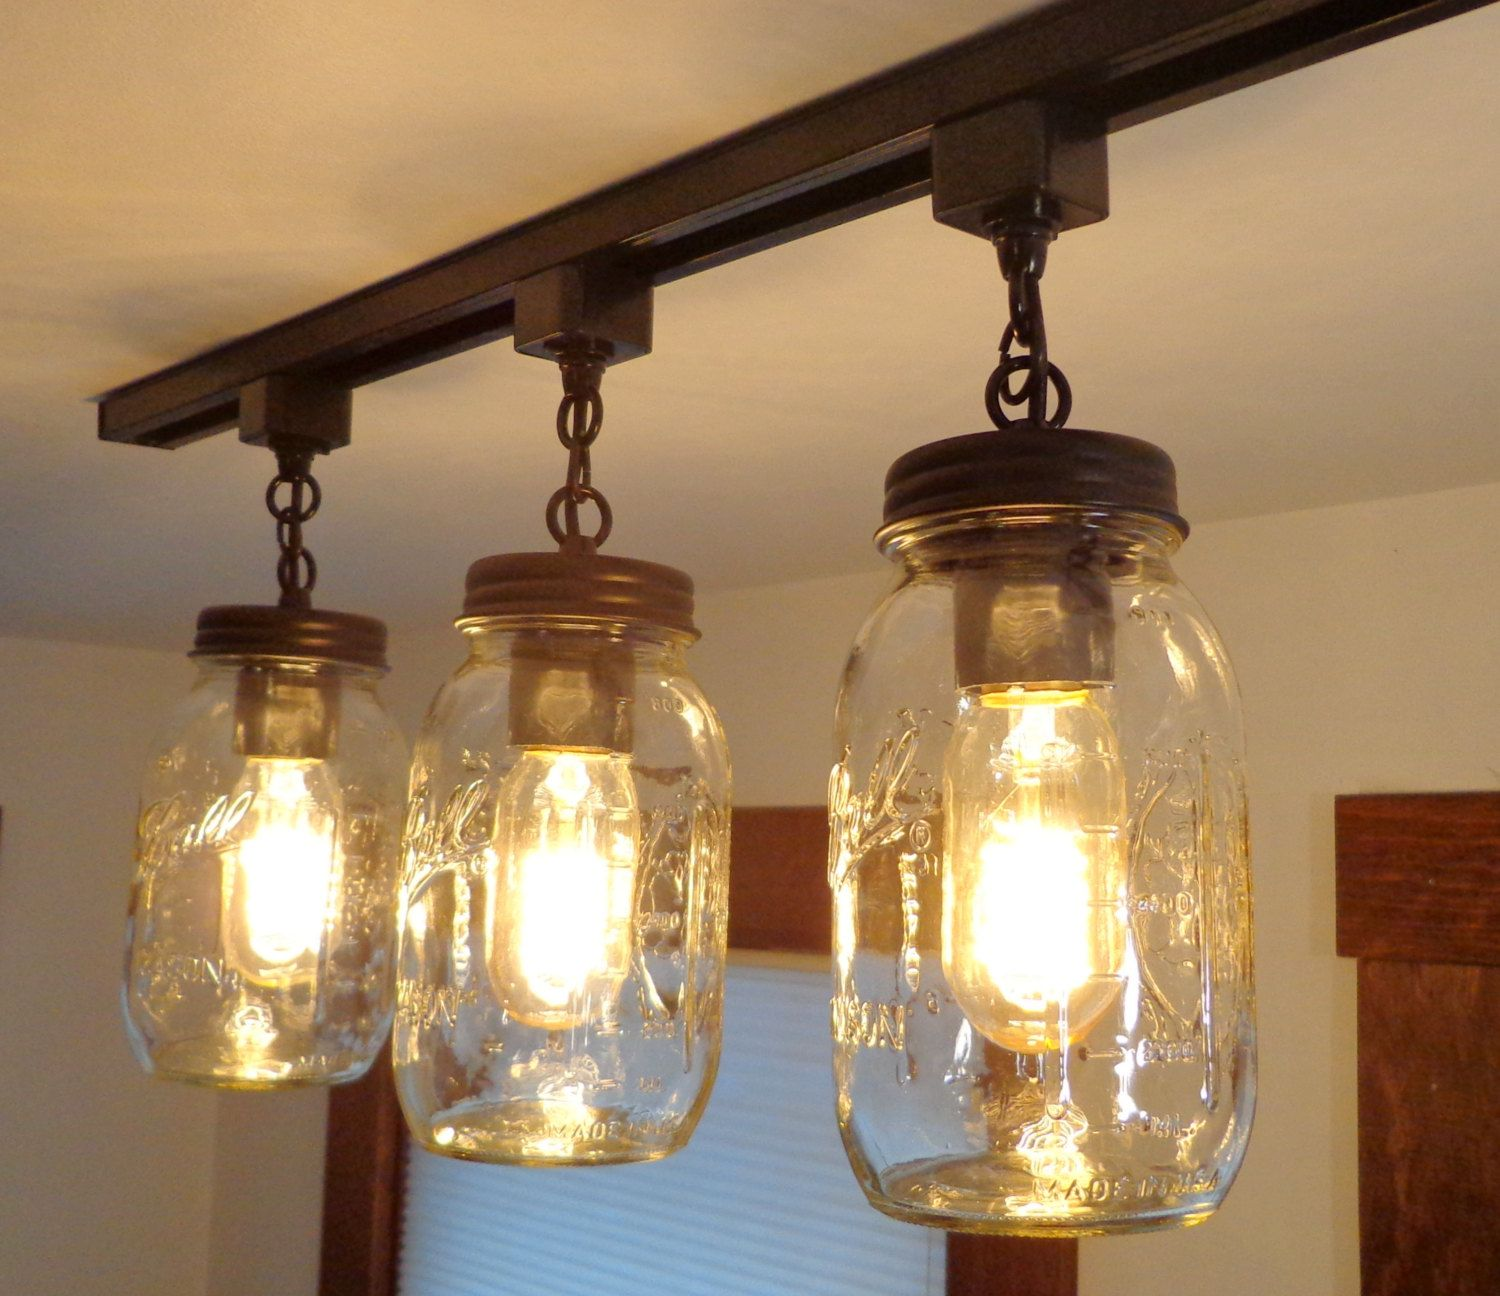 Track Lighting Mason Jar Light Trio New Quarts Chandelier Kitchen Island Country Remodel Update Flush Mount Ceiling Fixture By Lampgoods Jar Ceiling Light Jar Lights Mason Jar Lighting